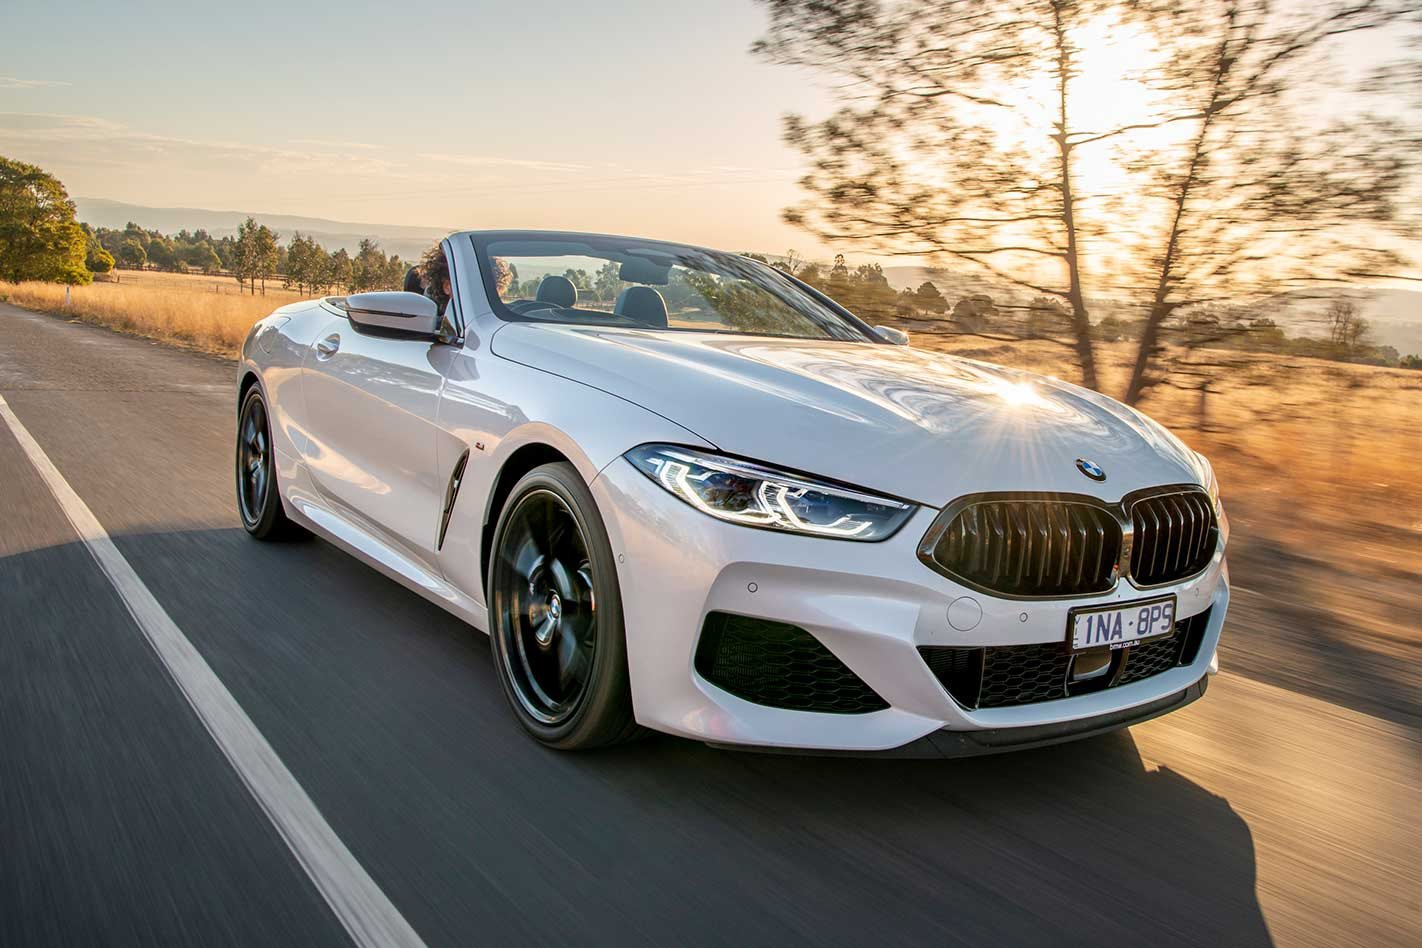 2019 BMW M850i Convertible performance review